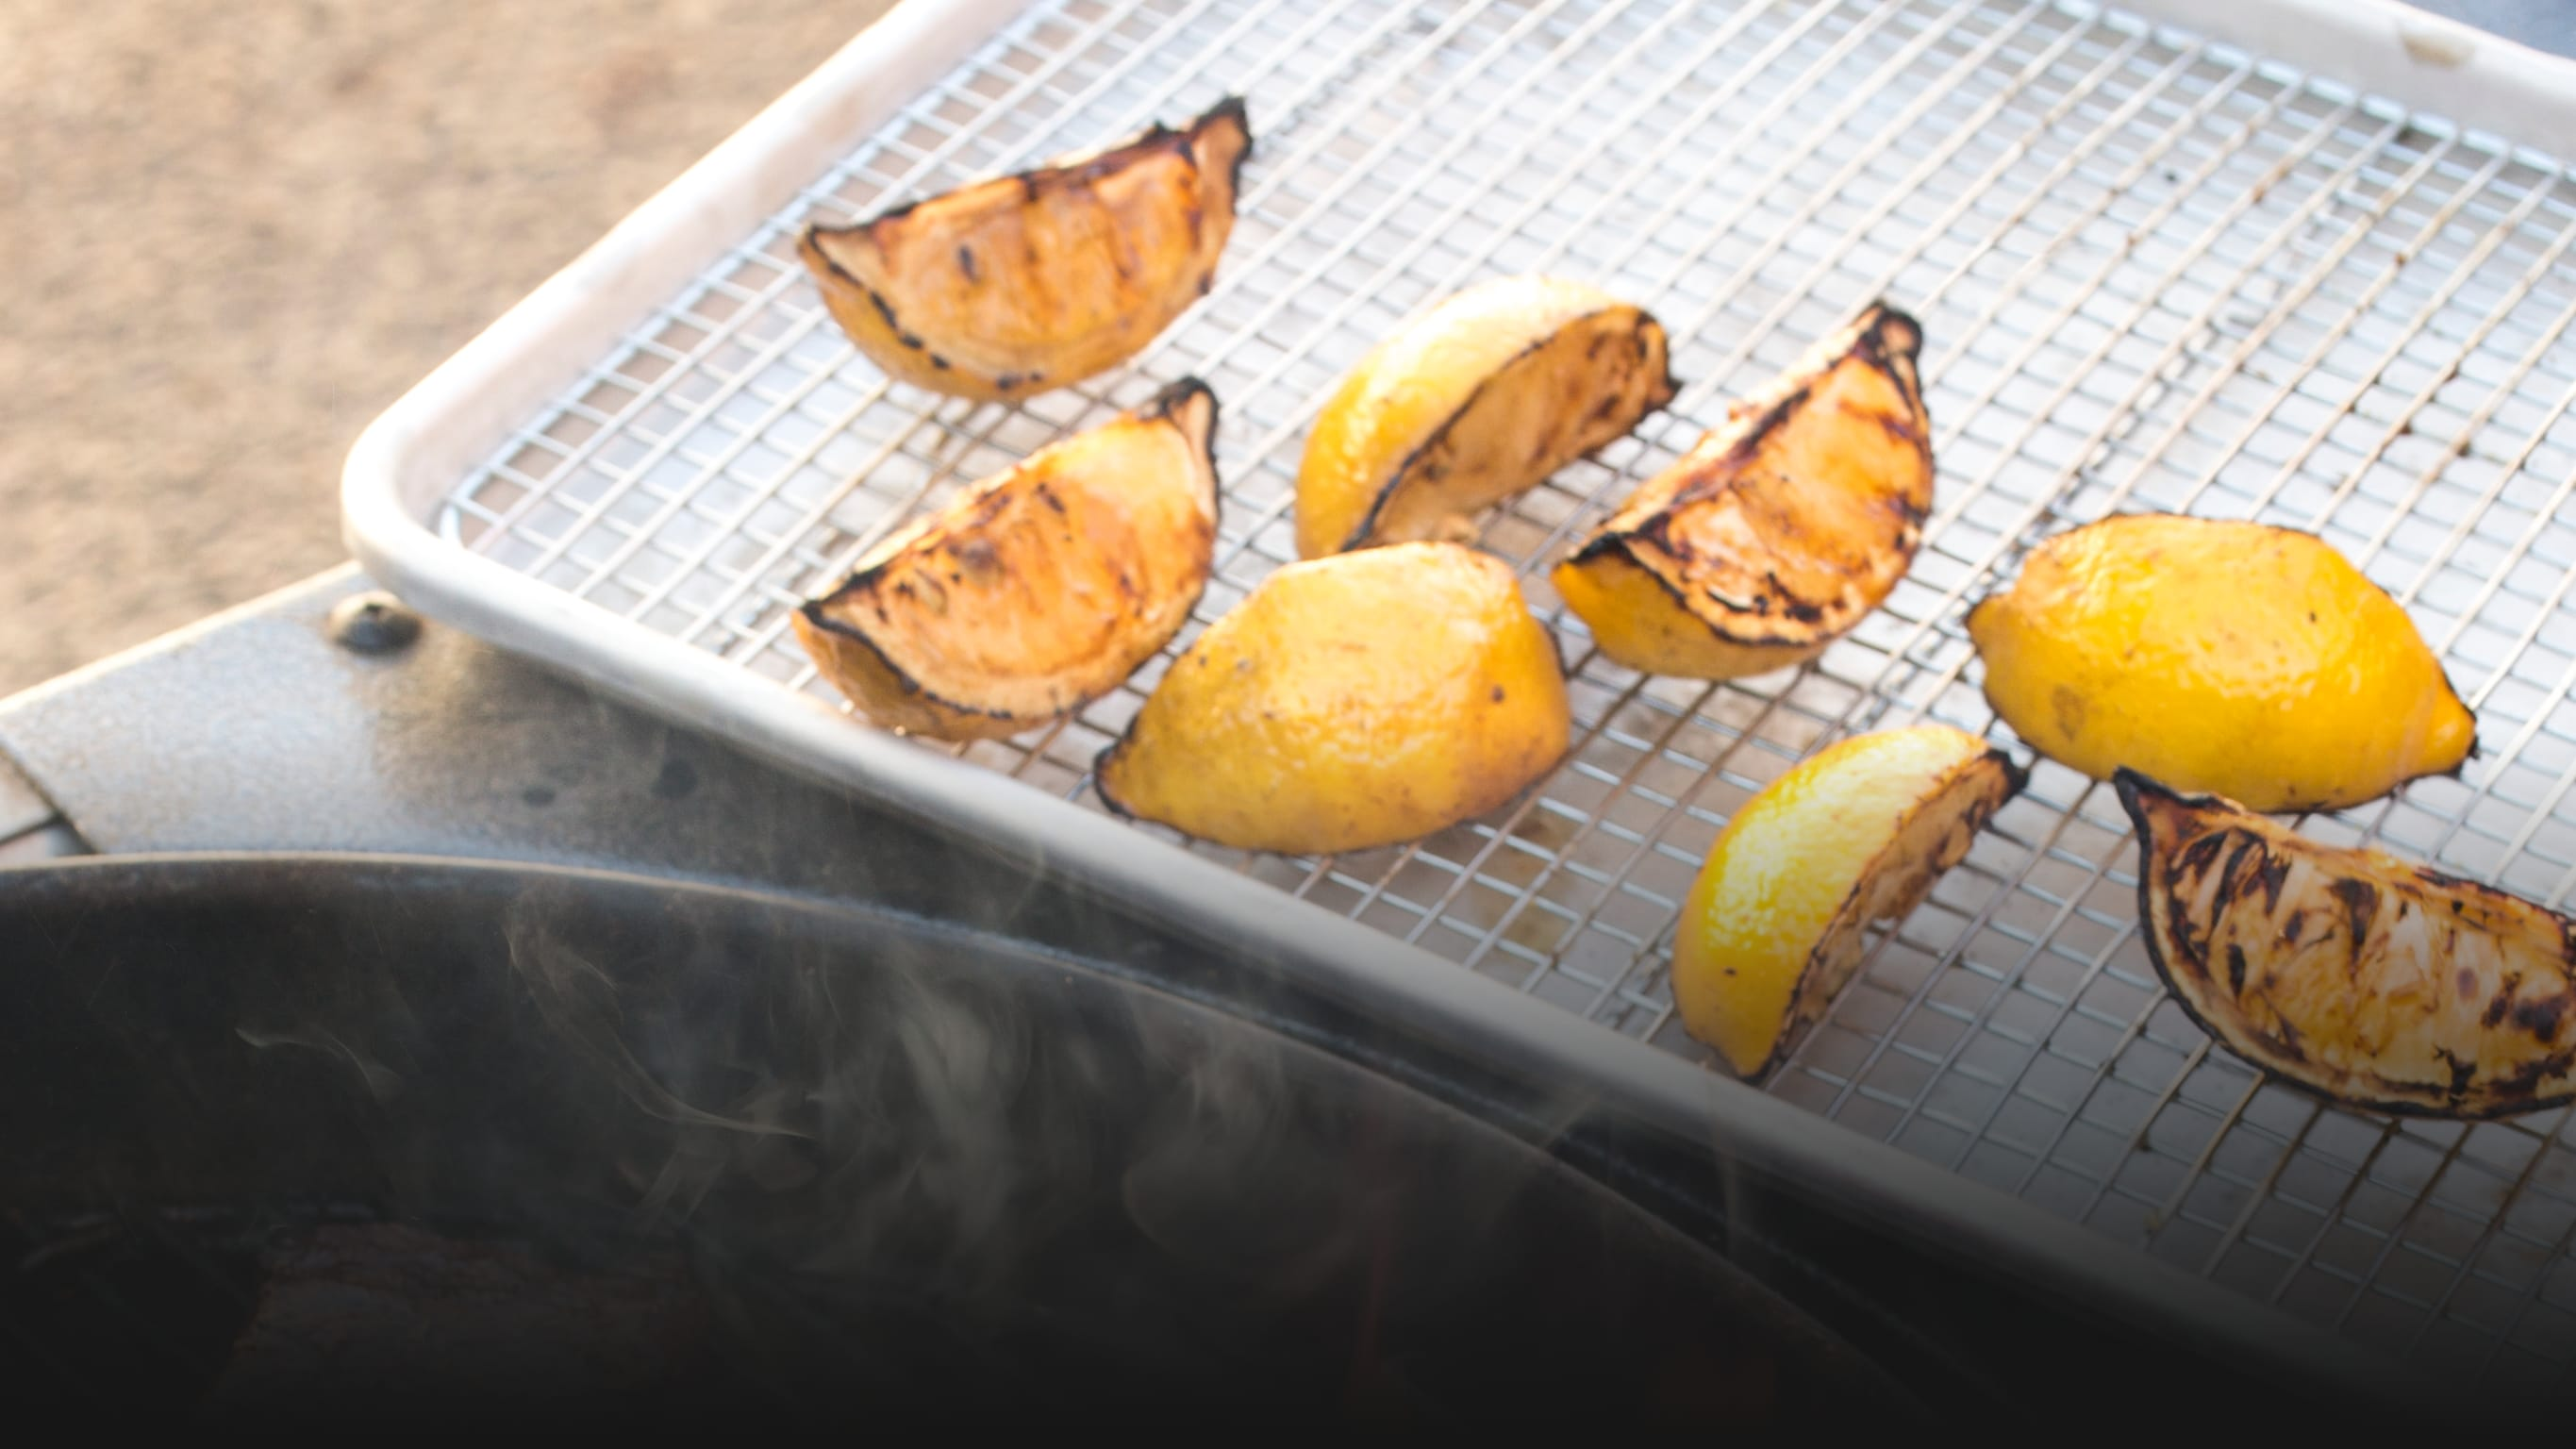 When Life Hands You Lemons (or Limes), Grill Them